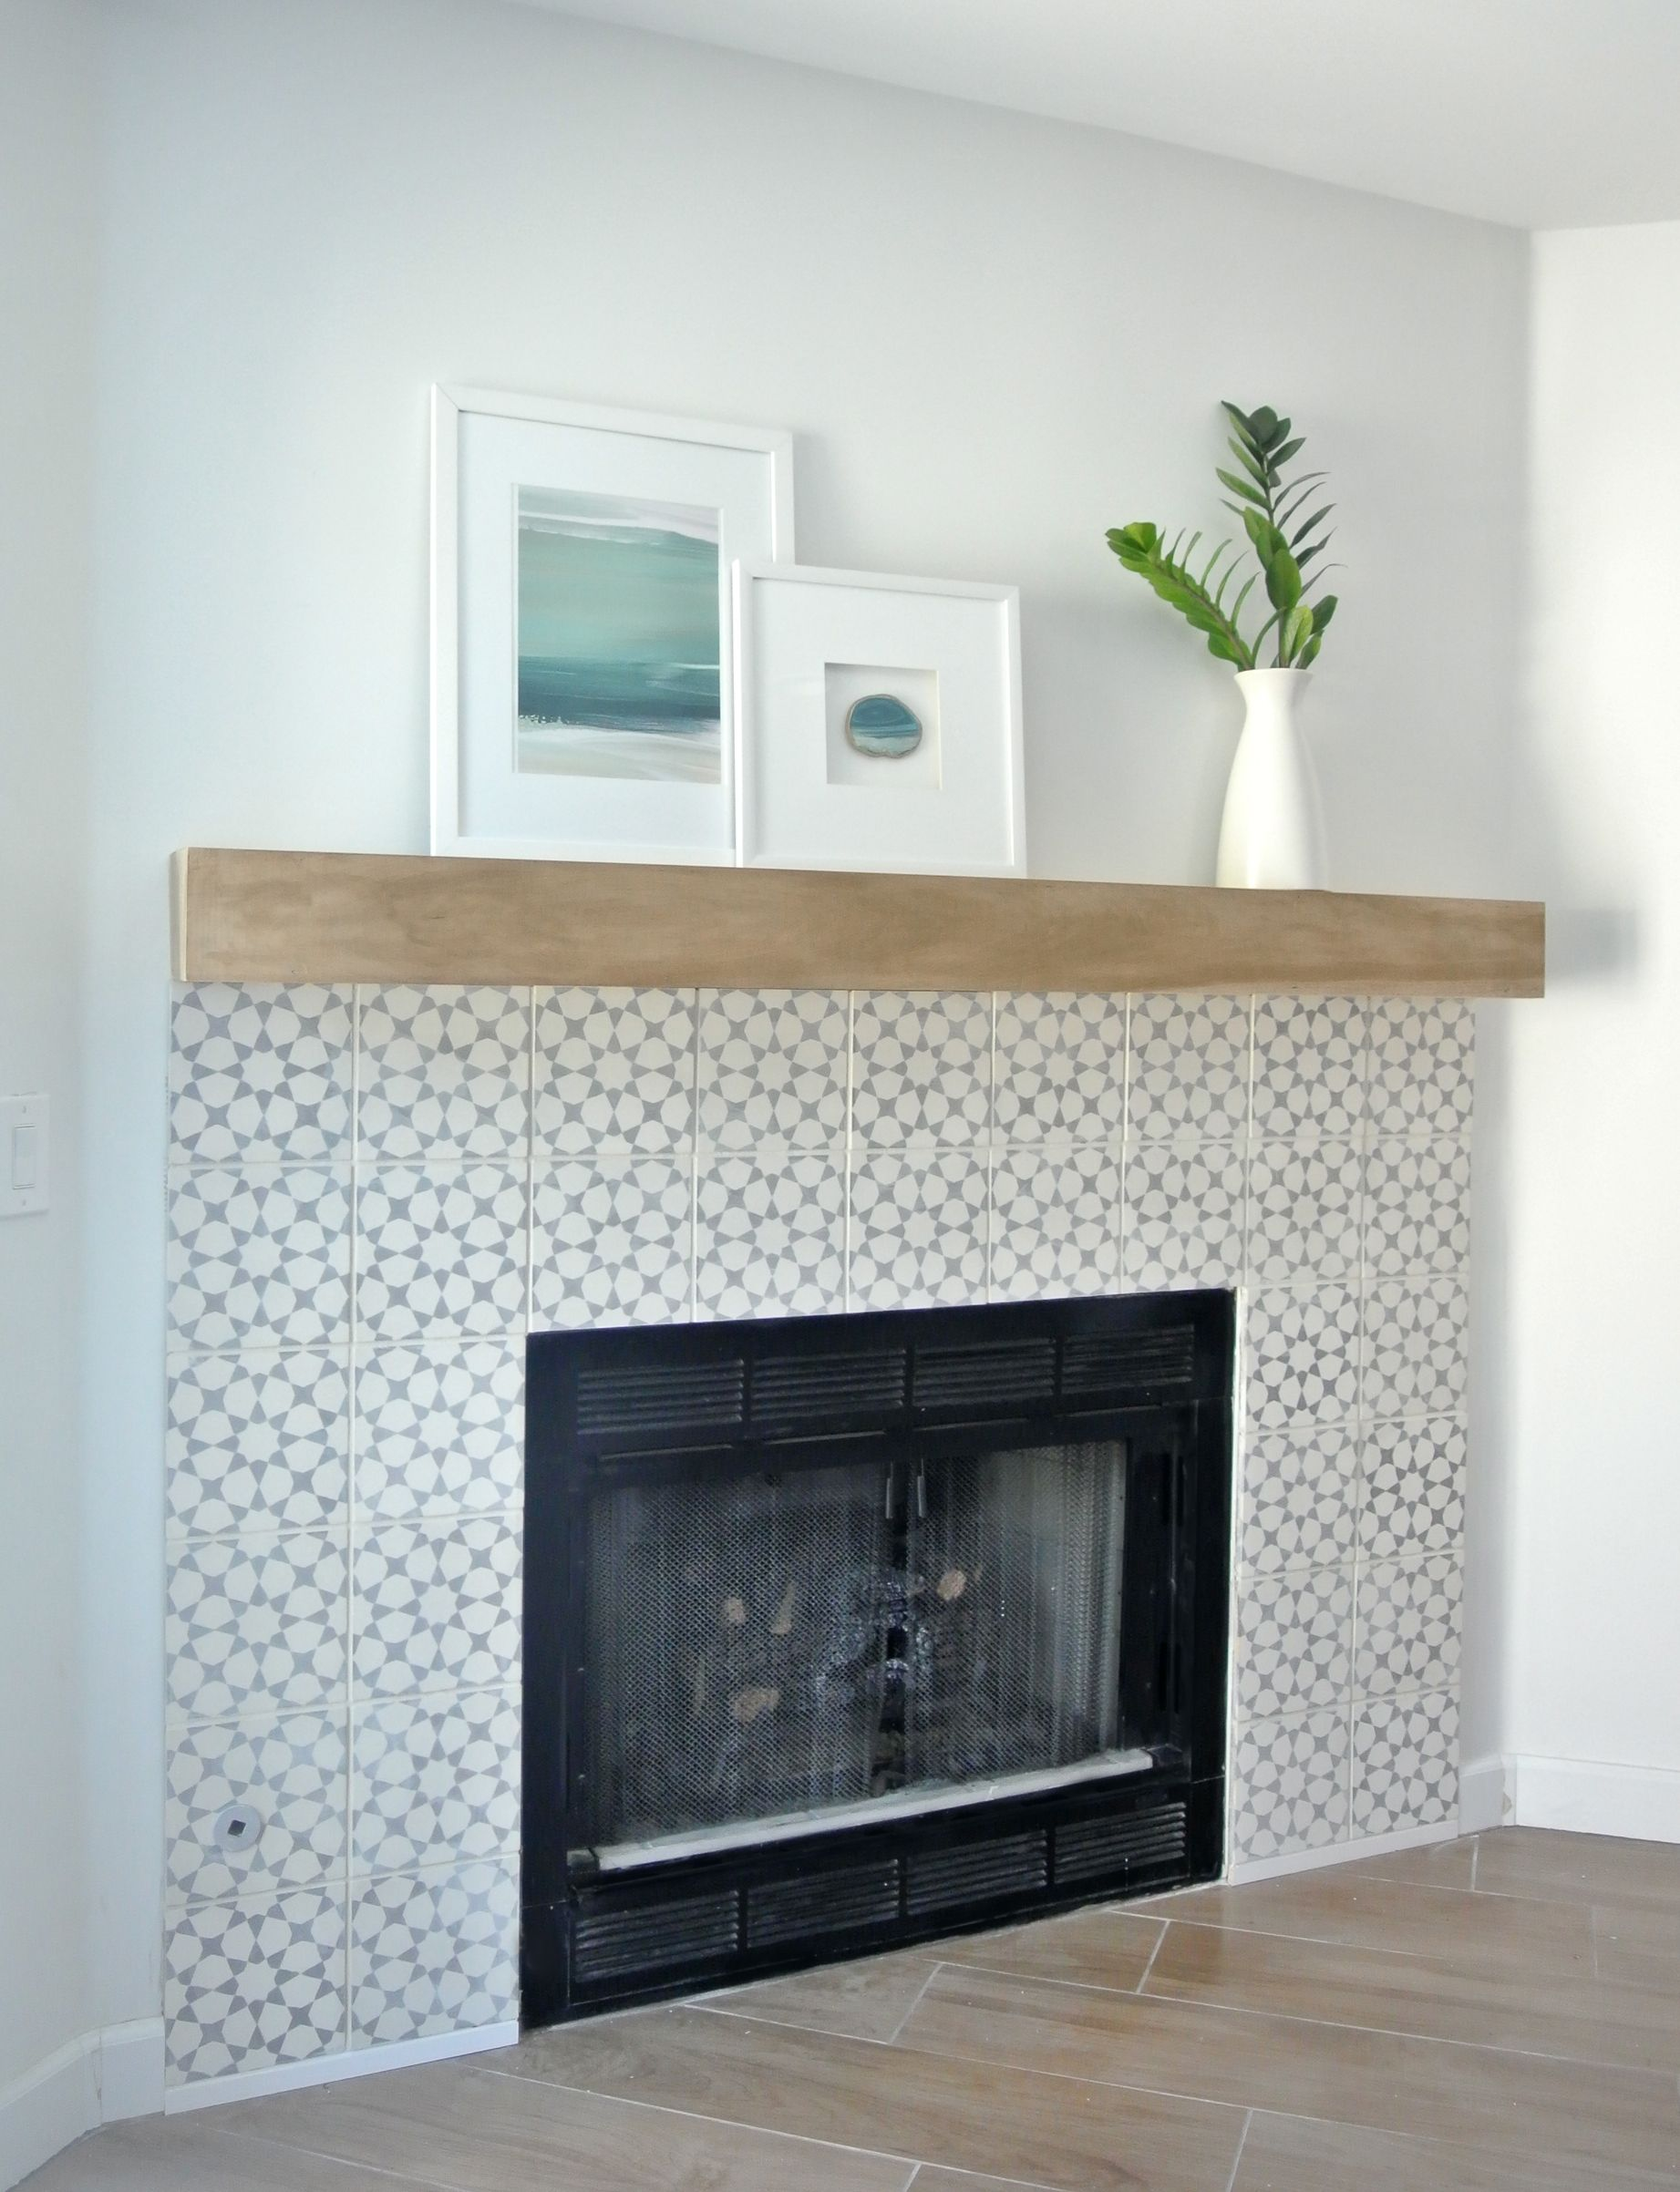 DIY Fireplace Makeover Diy fireplace makeover, Fireplace